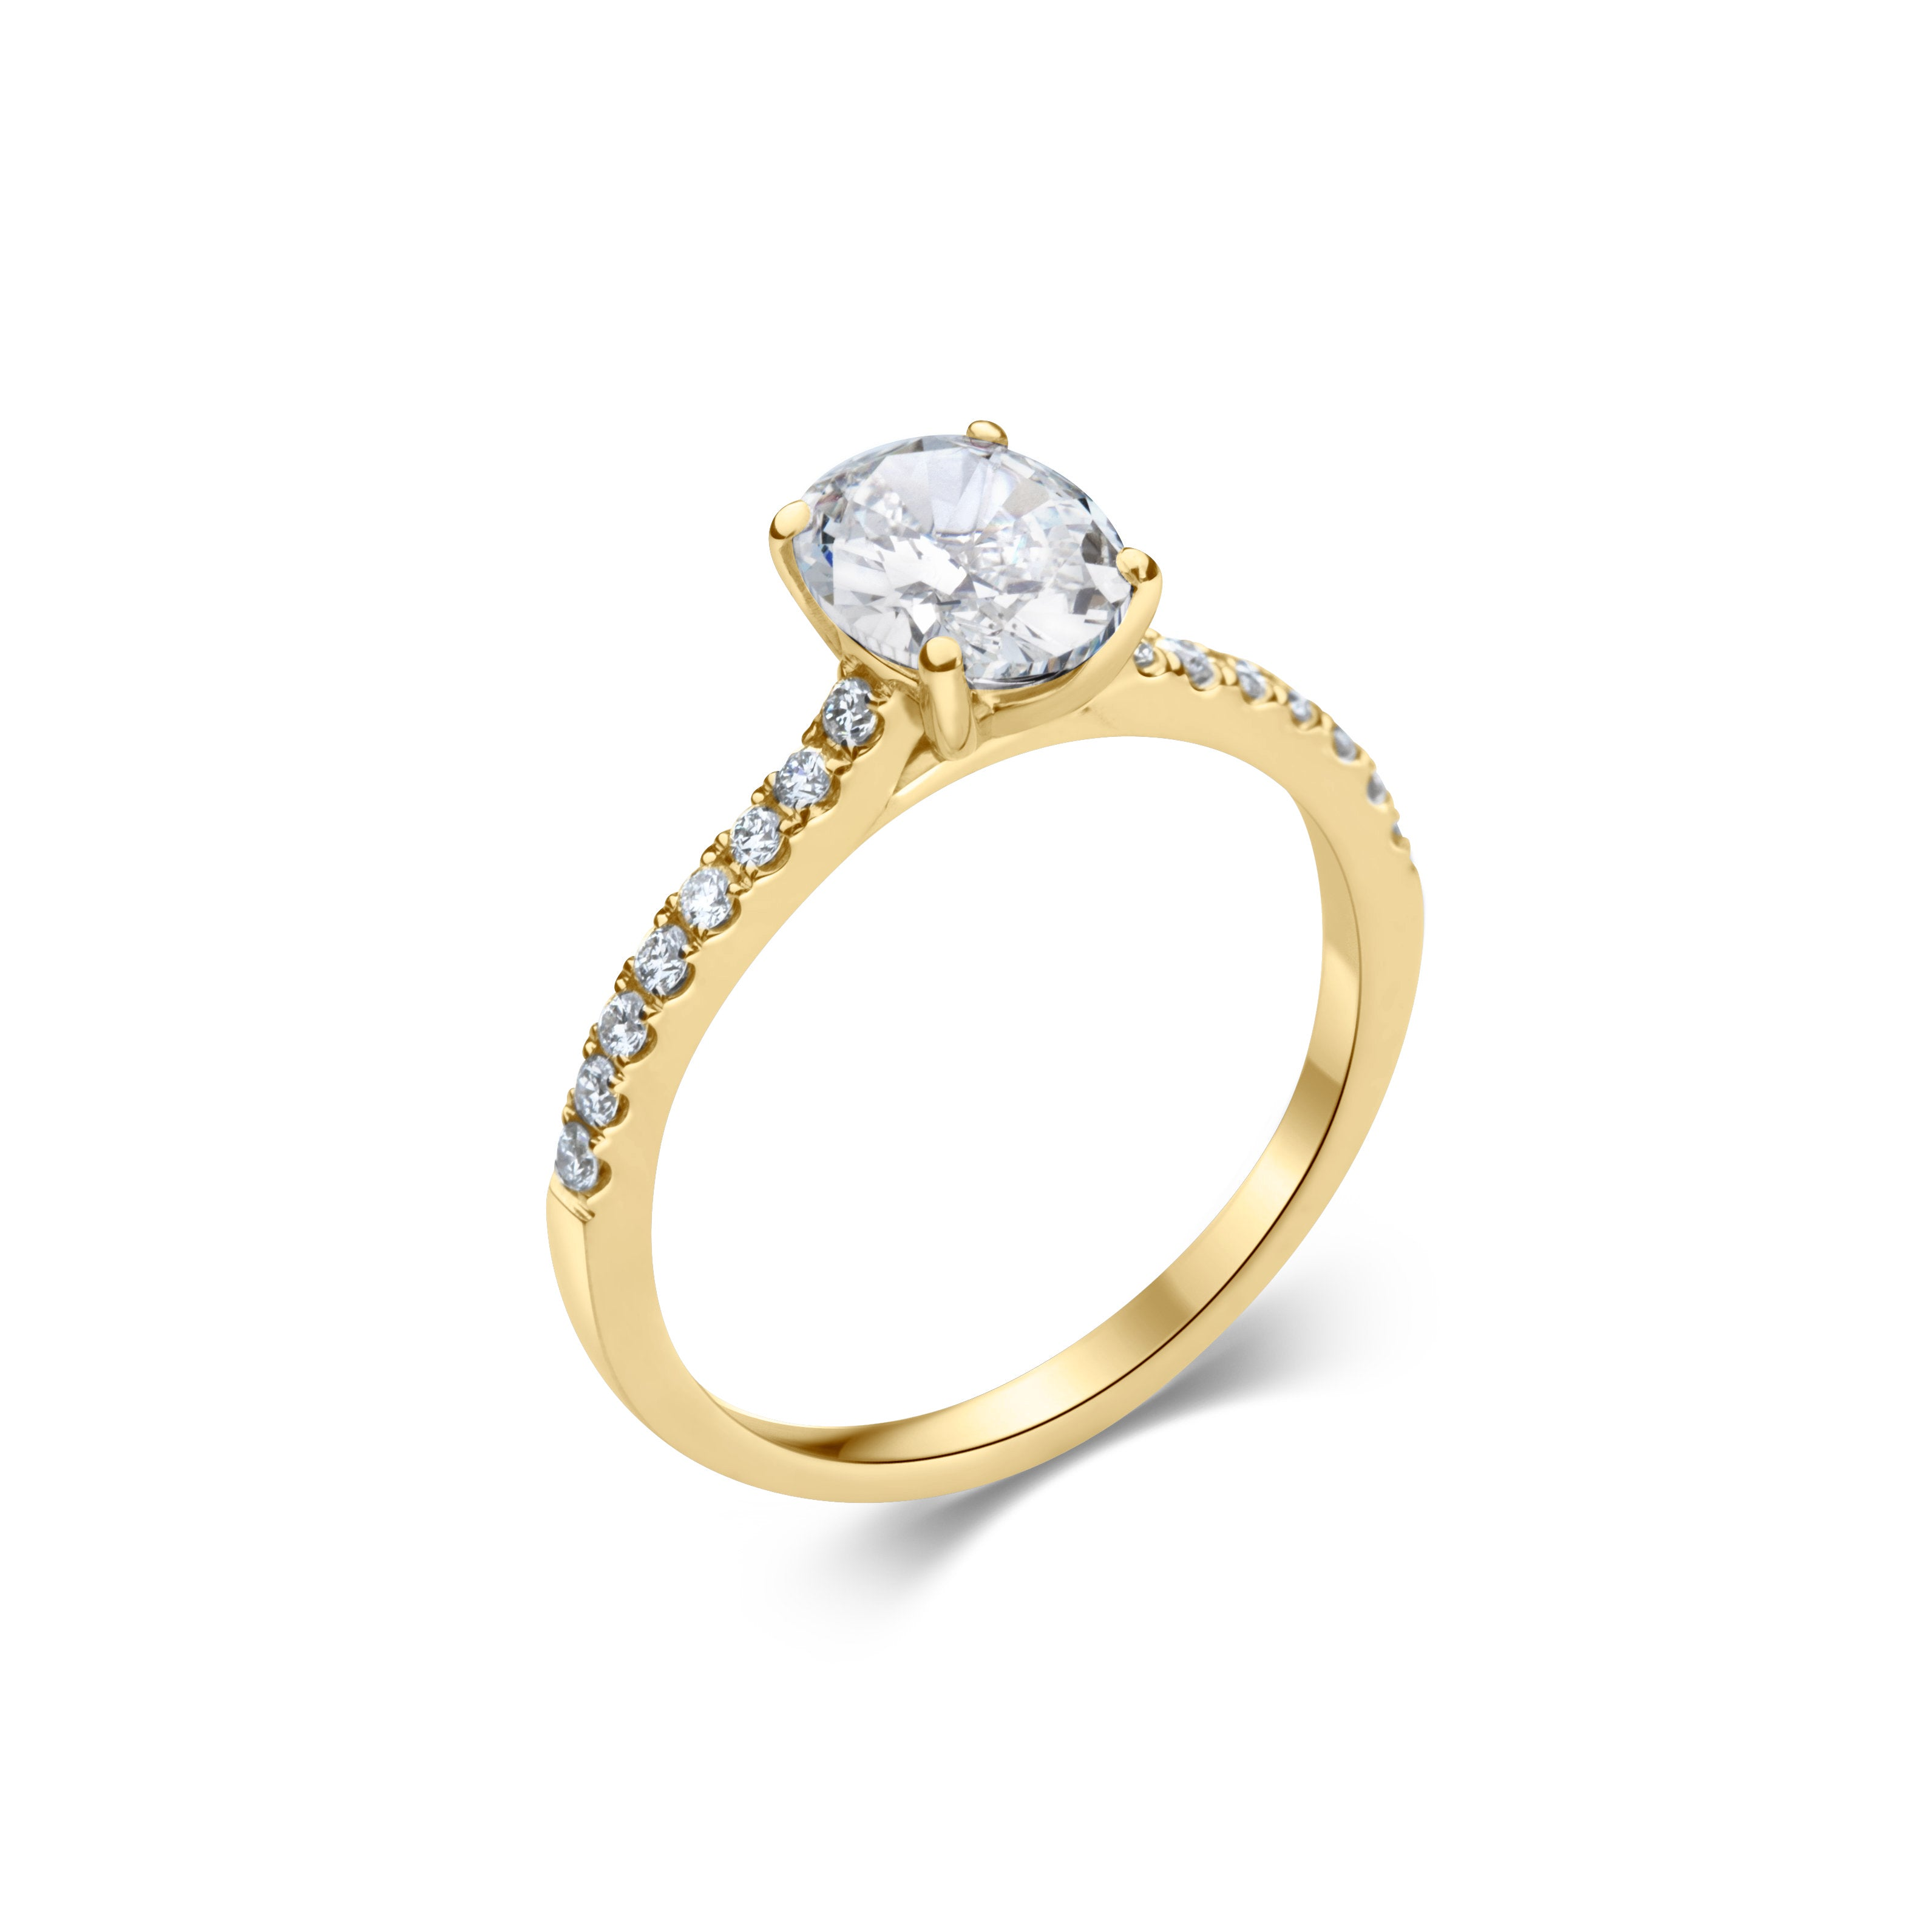 LYSANDER oval cut yellow gold